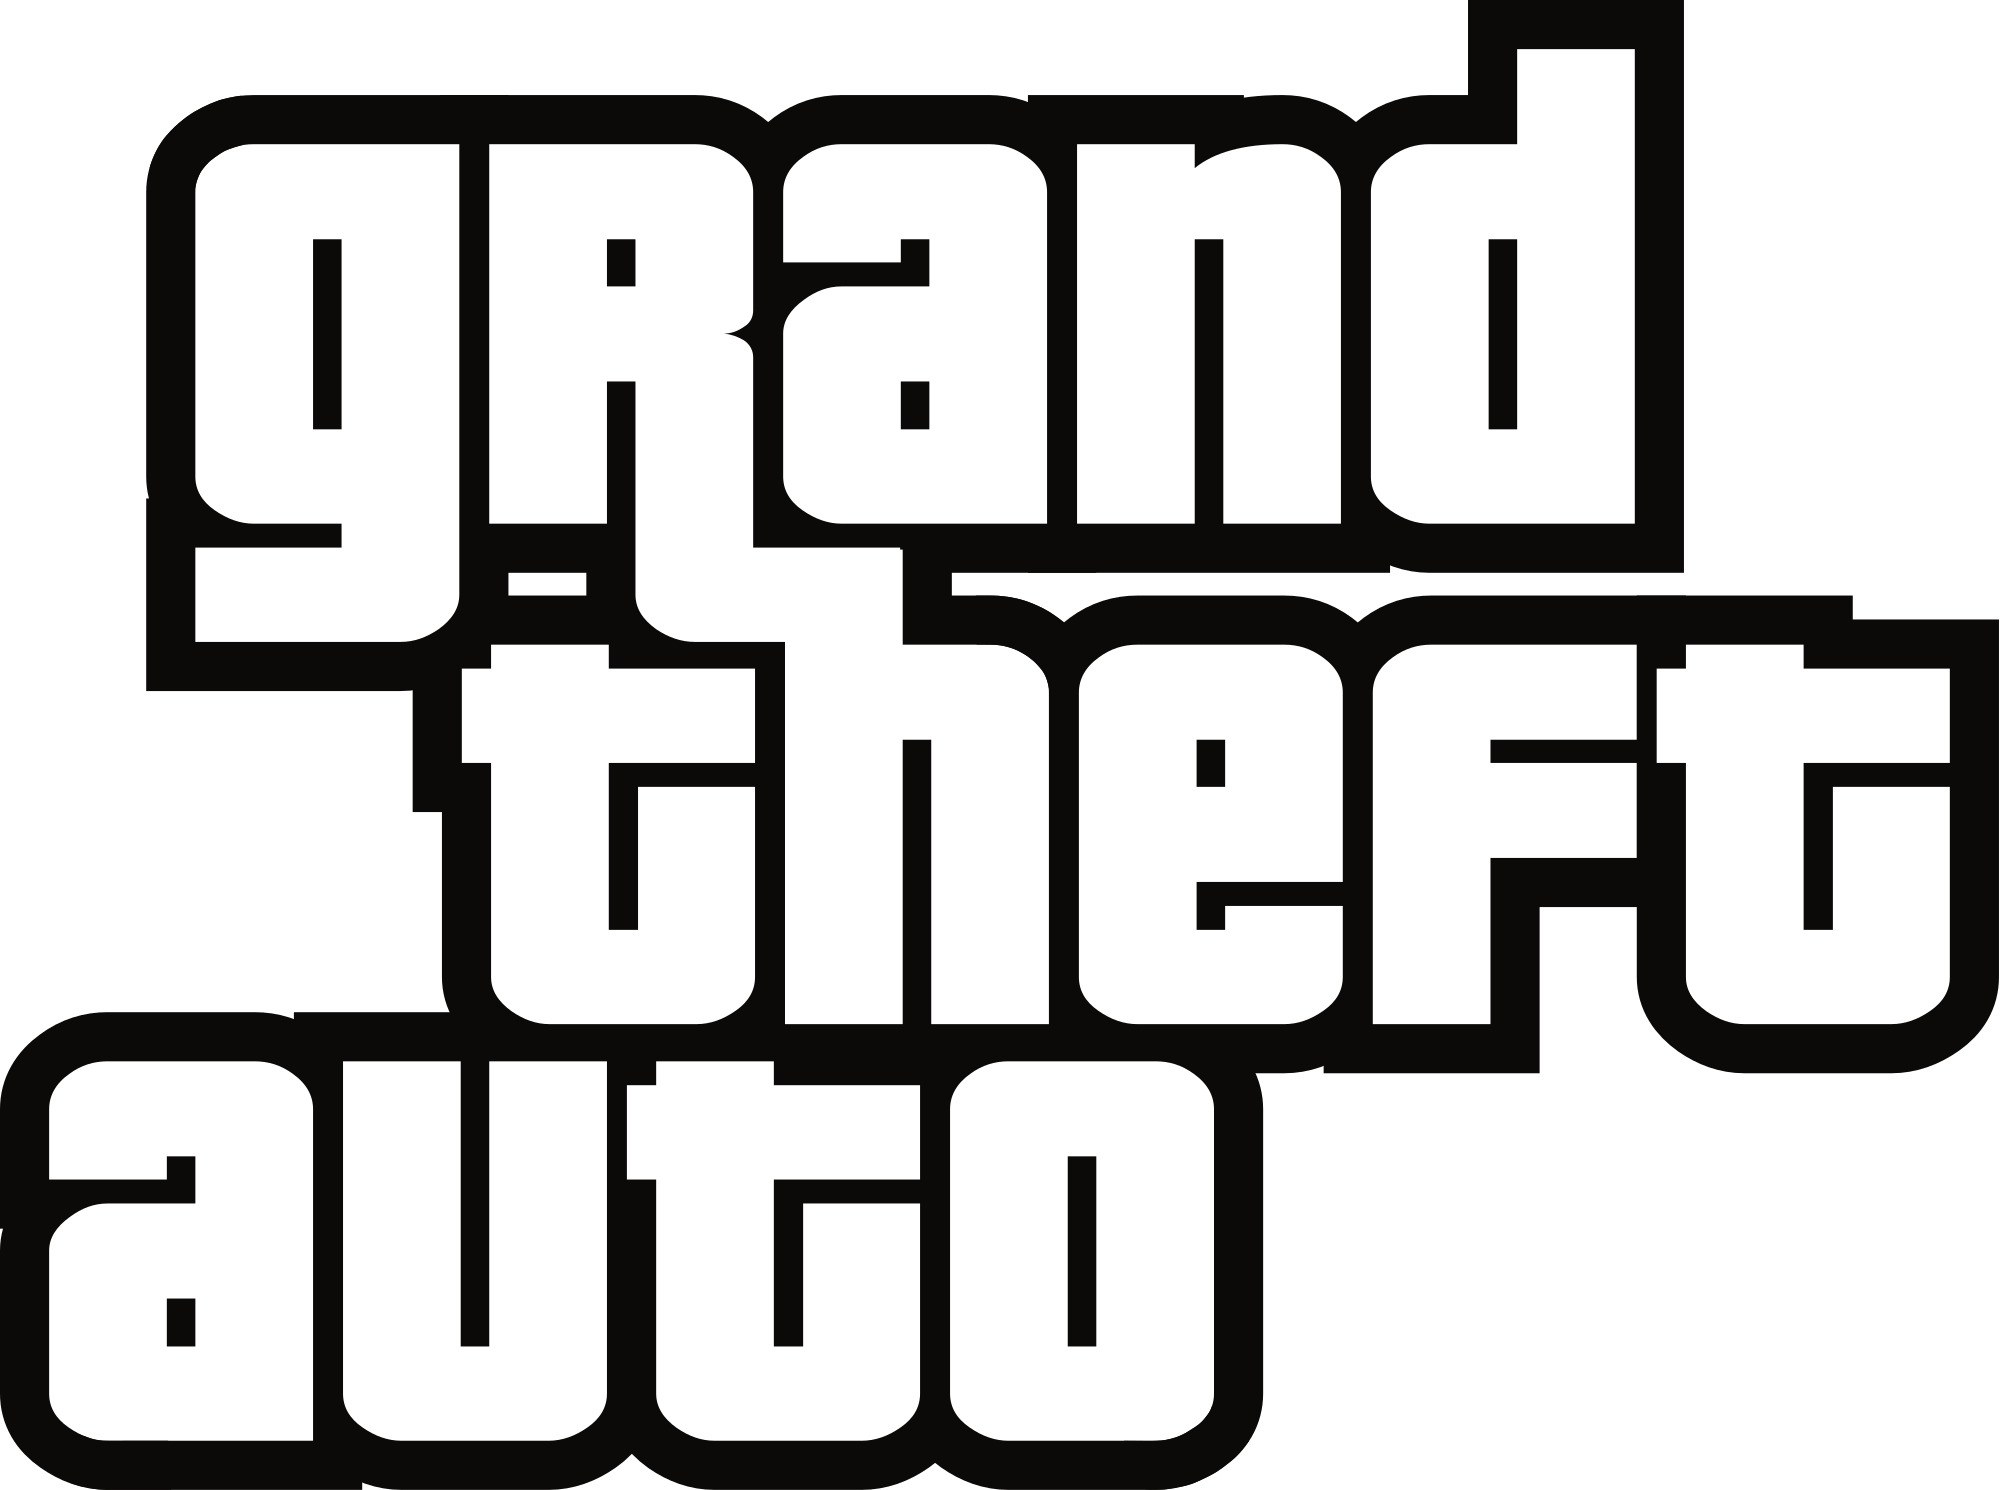 Grand theft auto 5 logo png. File series svg wikimedia